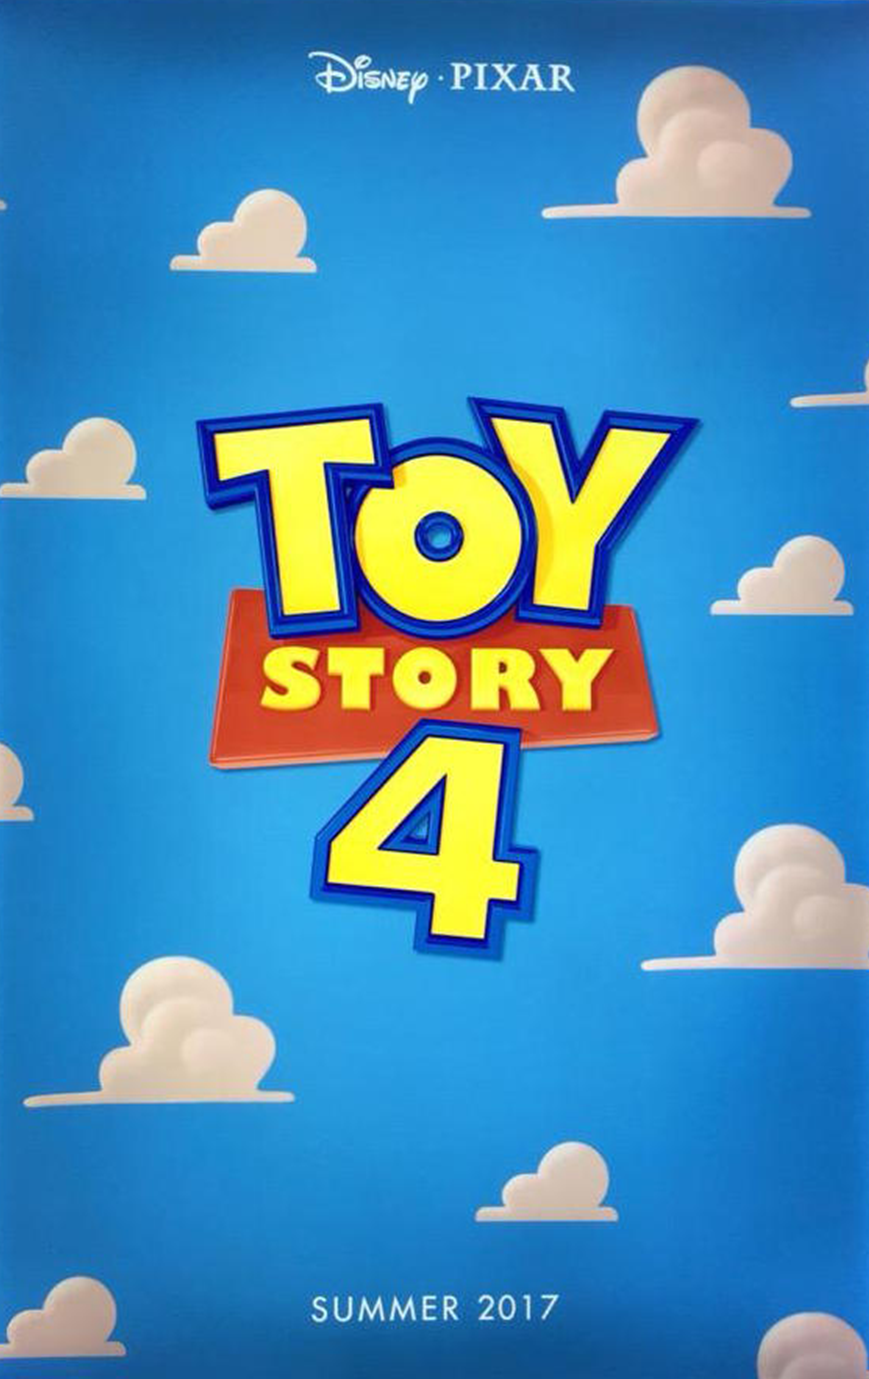 Toy Story 4 Trailer 2012 : Pixar corner gives sneak peek at toy story